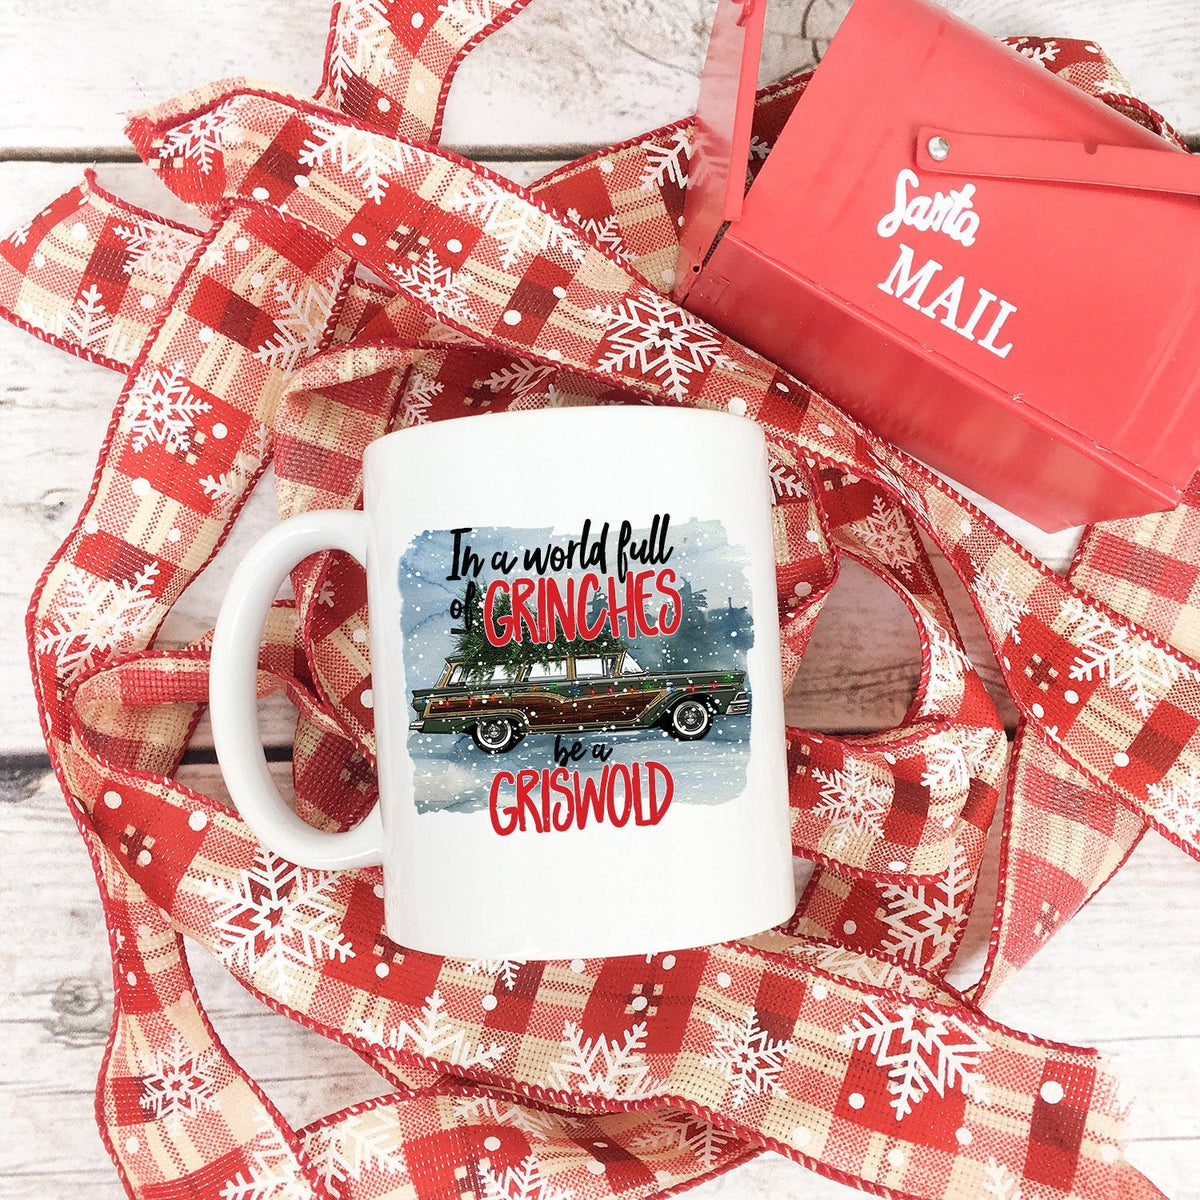 In a world full of grinches be a griswold mug-Mugs-Maddie & Co.